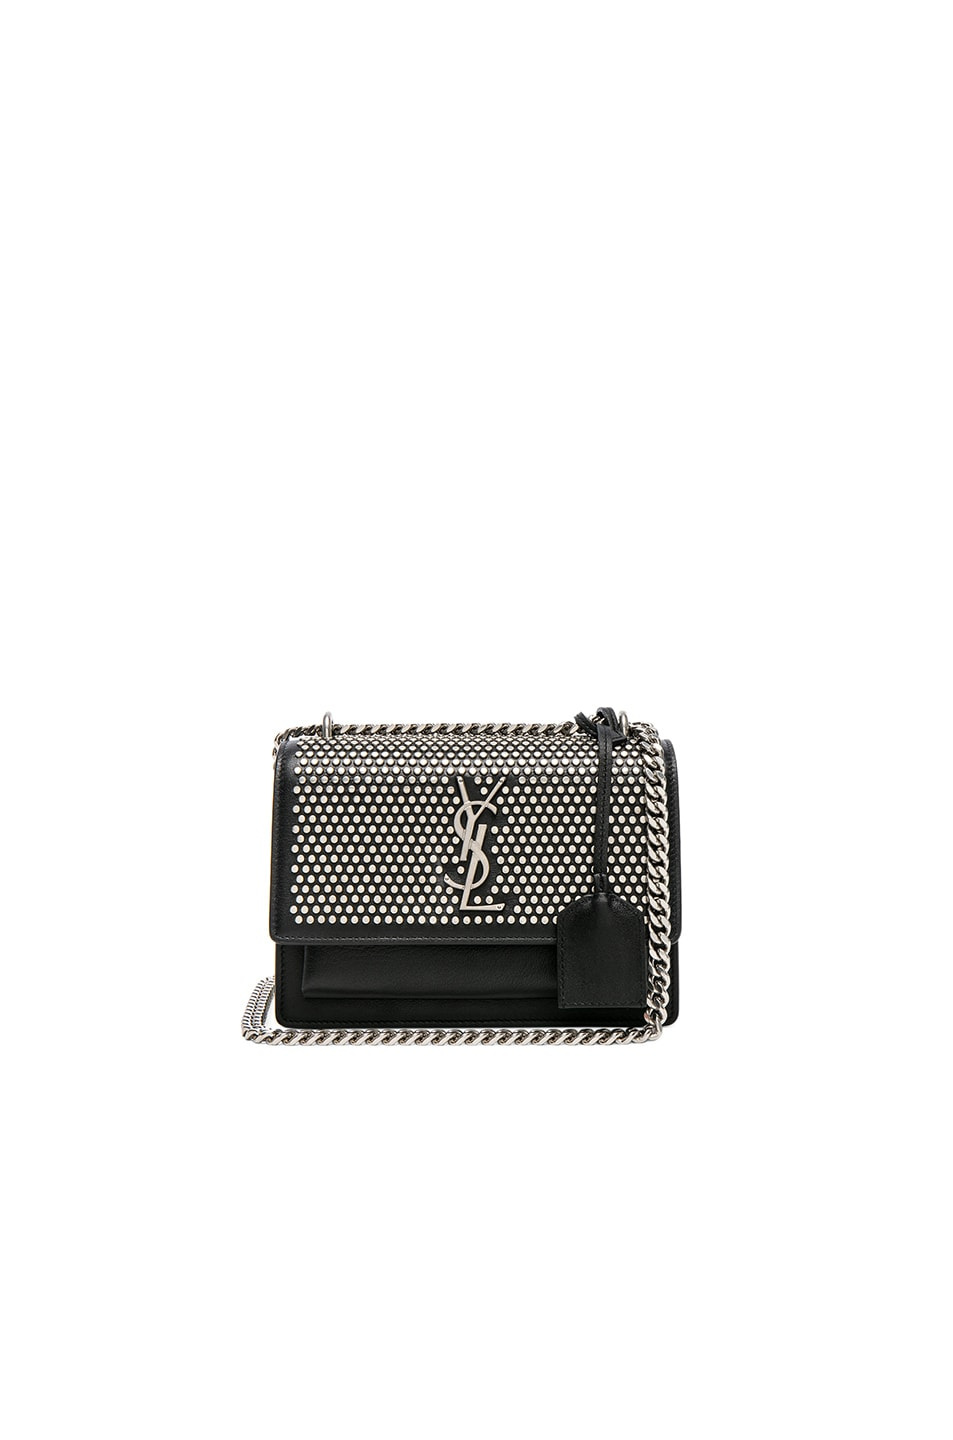 2615c0f7286bf Image 1 of Saint Laurent Small Studded Monogramme Sunset Chain Bag in Black